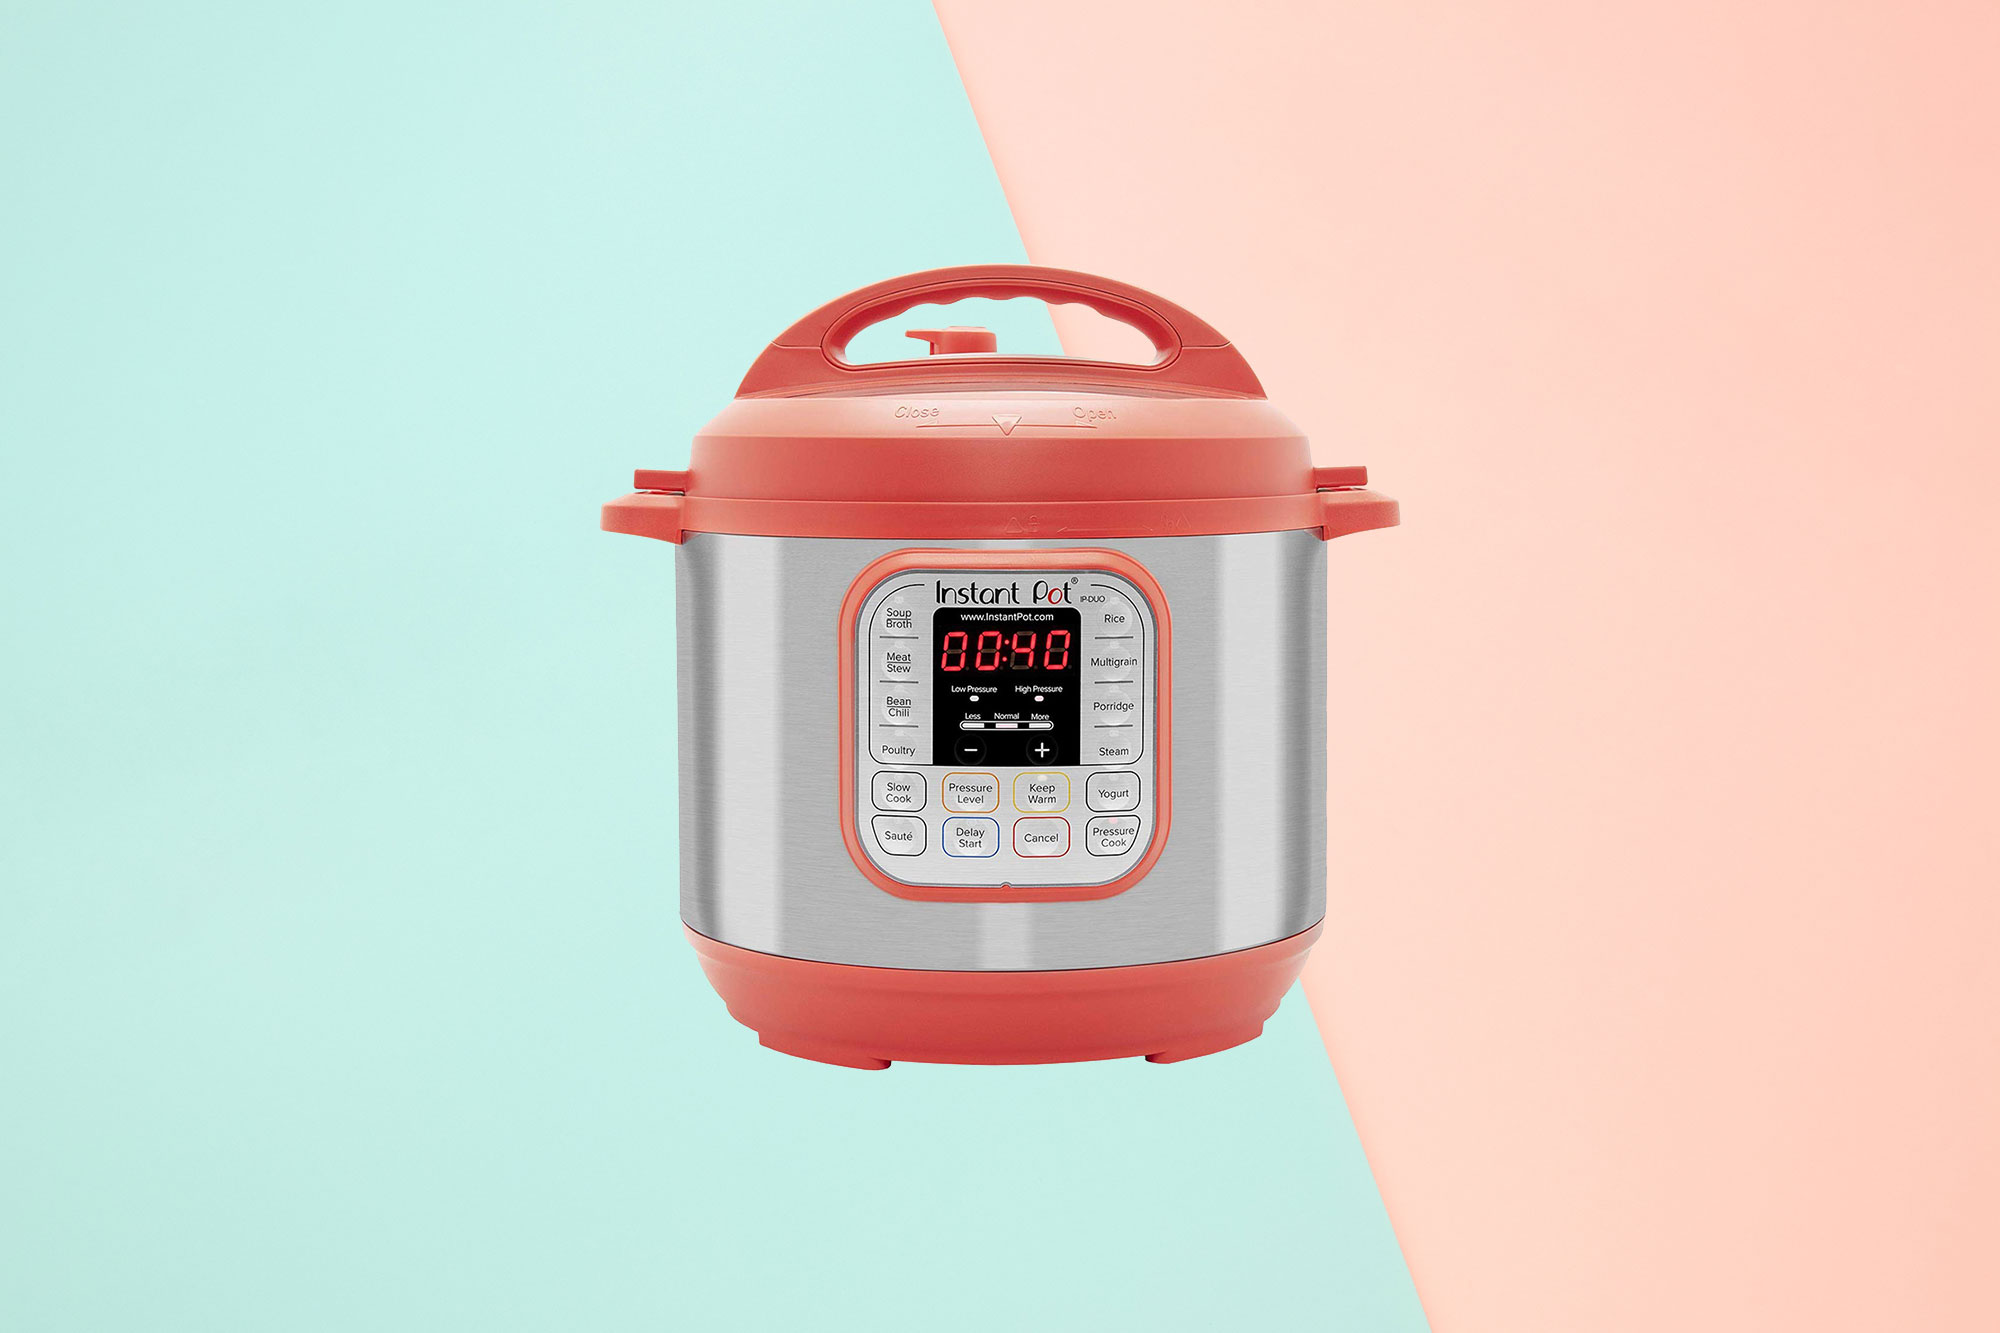 Instant Pot Duo RED 60 7-in-1 Multi-Use Programmable Pressure Cooker